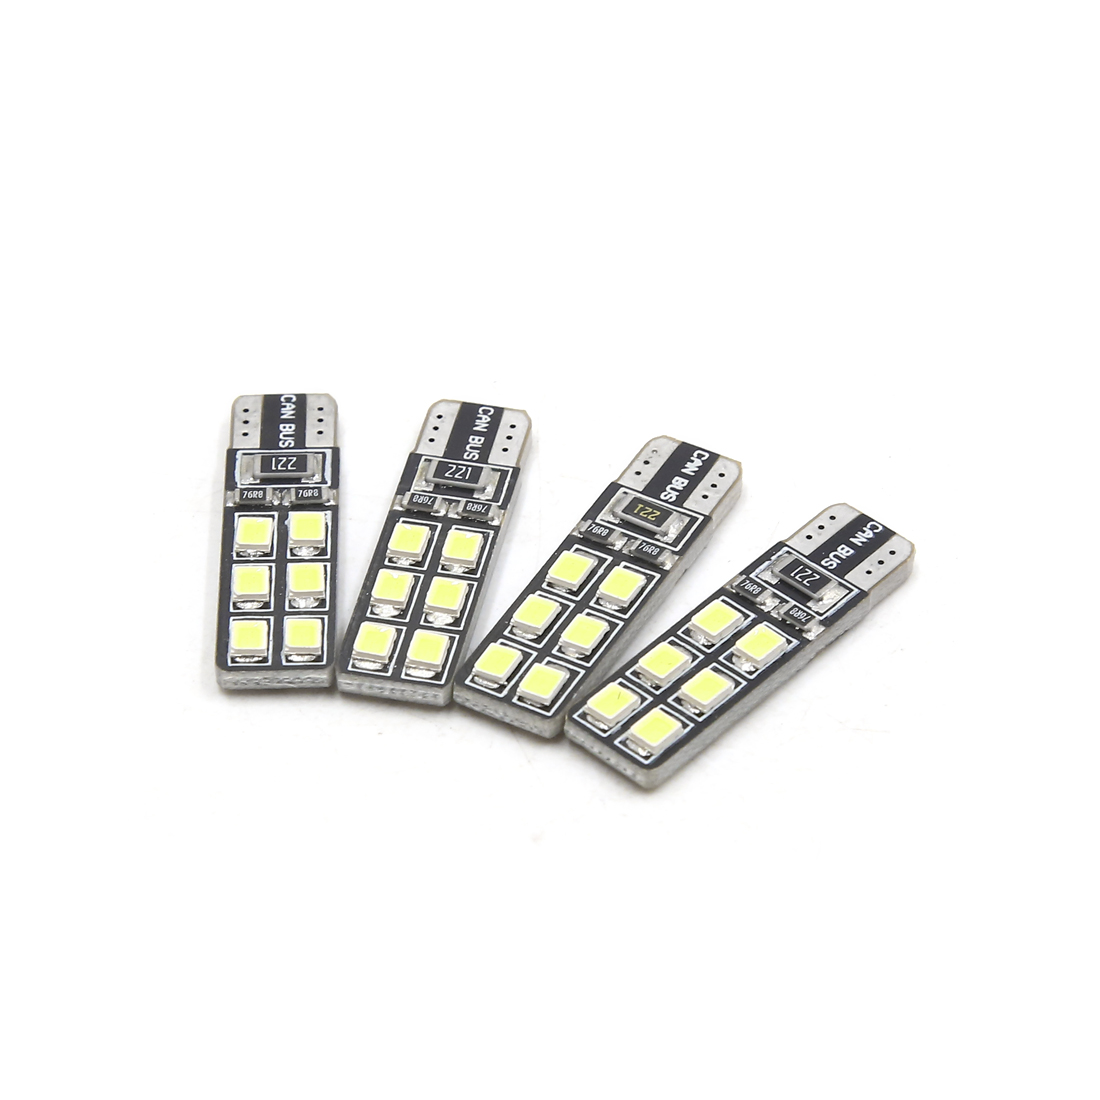 4Pcs T10 White 12 1210-SMD Canbus LEDs Car Panel Light Interior W5W 192 158 194